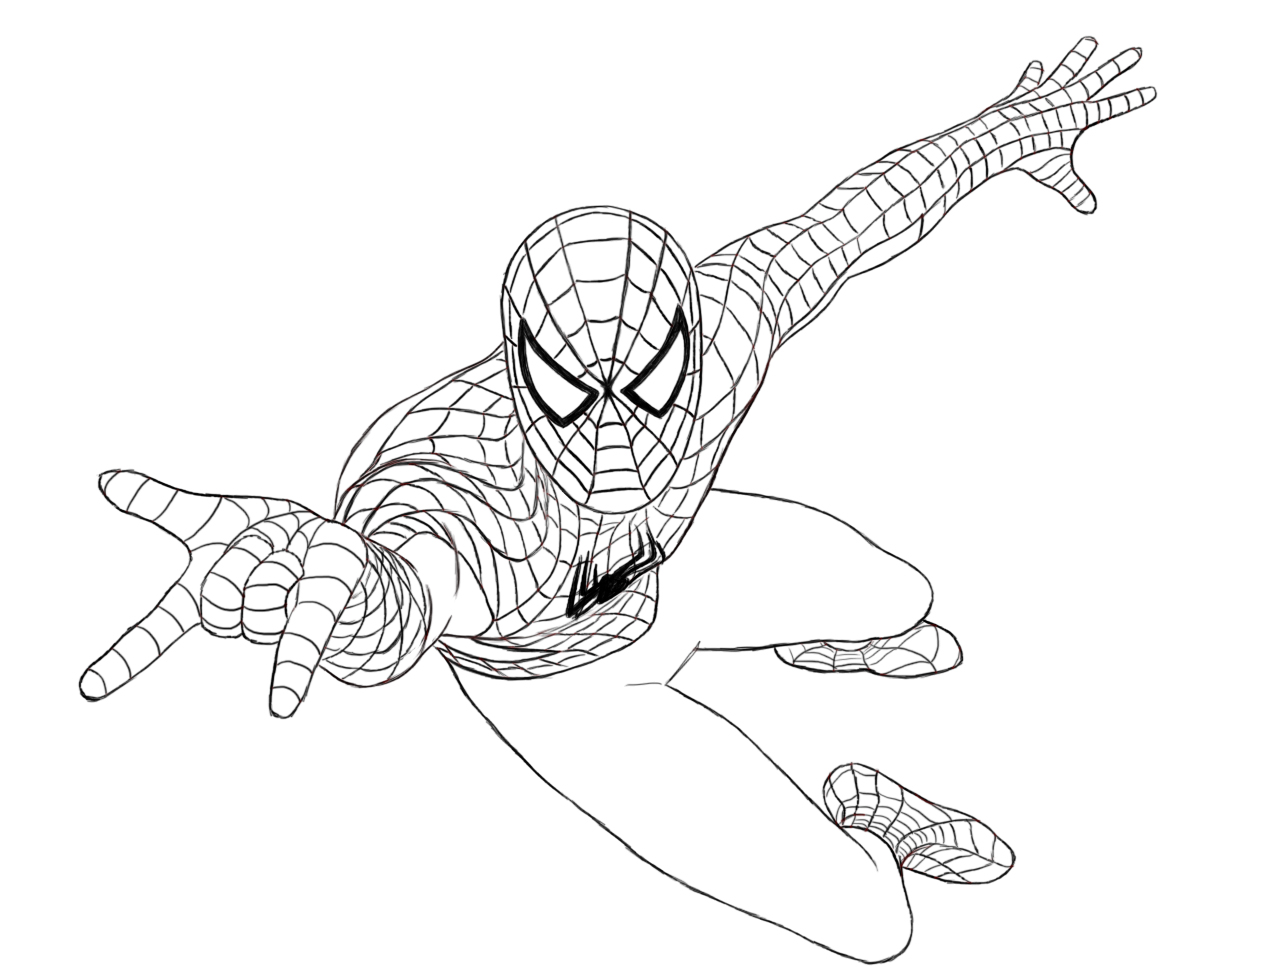 Spiderman coloring games - Spiderman Coloring Games For Kids